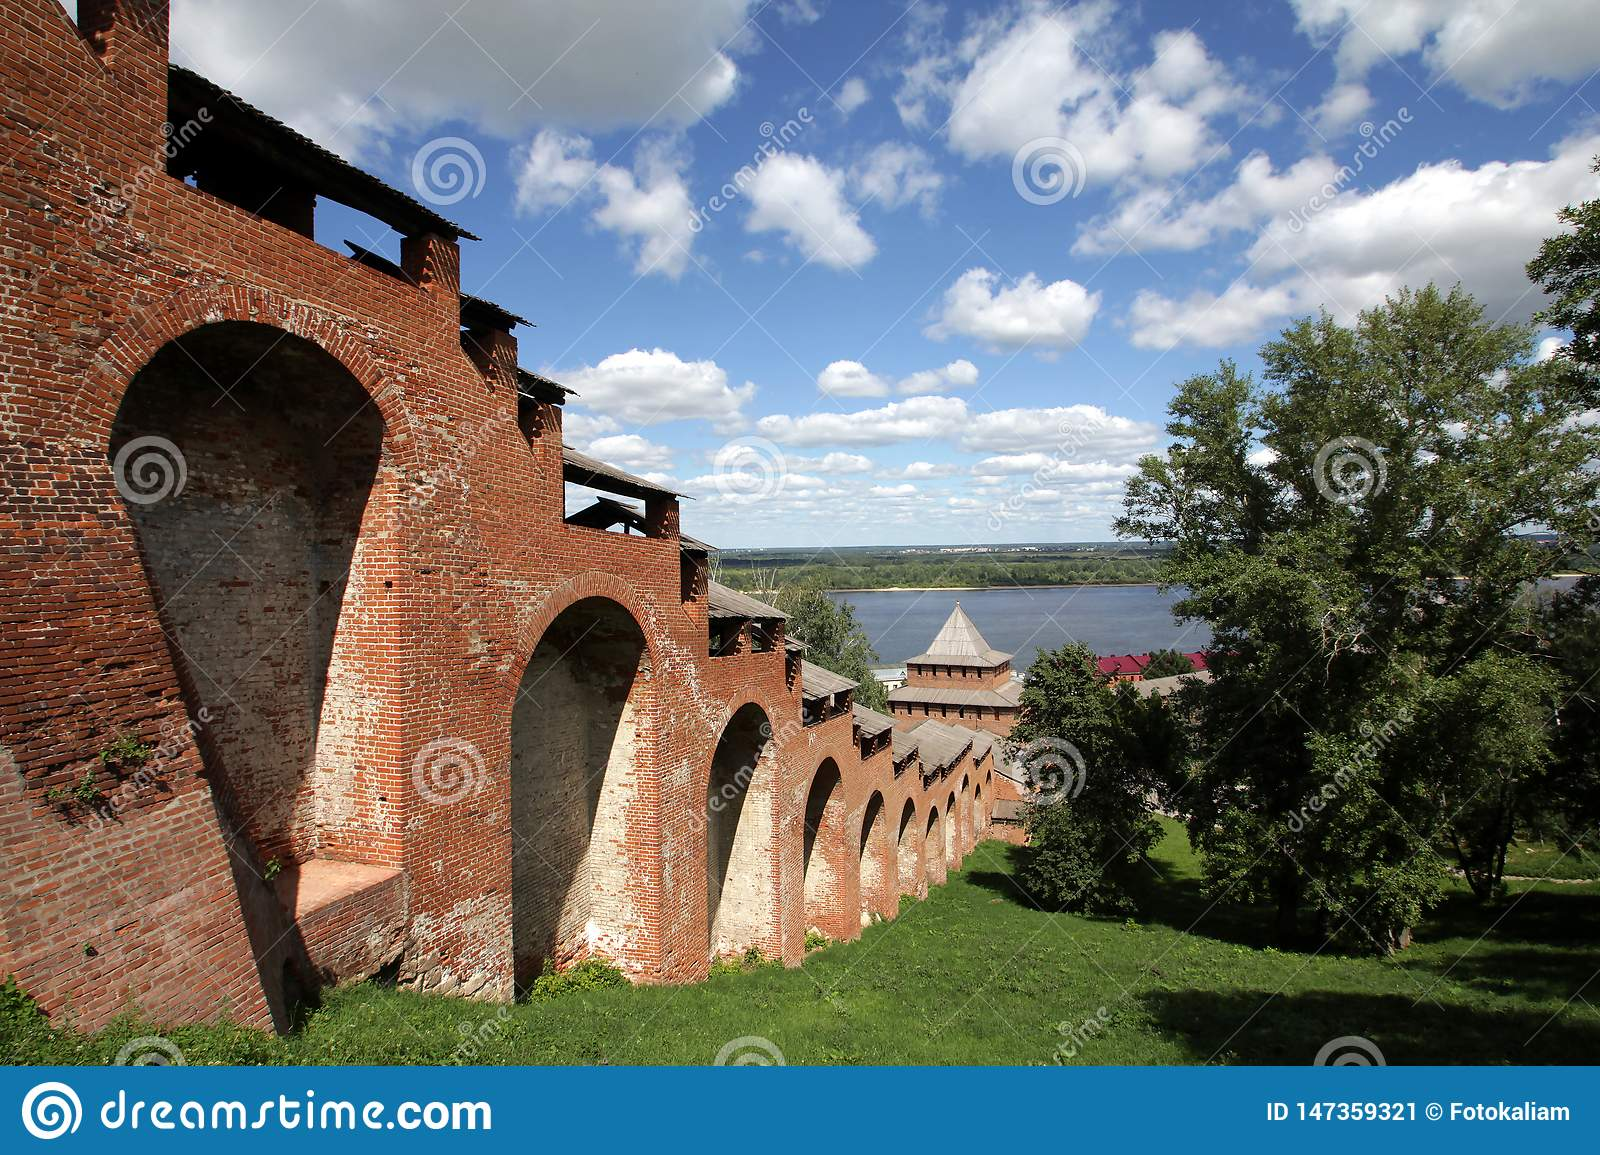 View of Kremlin walls under the blue sky with beautiful white clouds